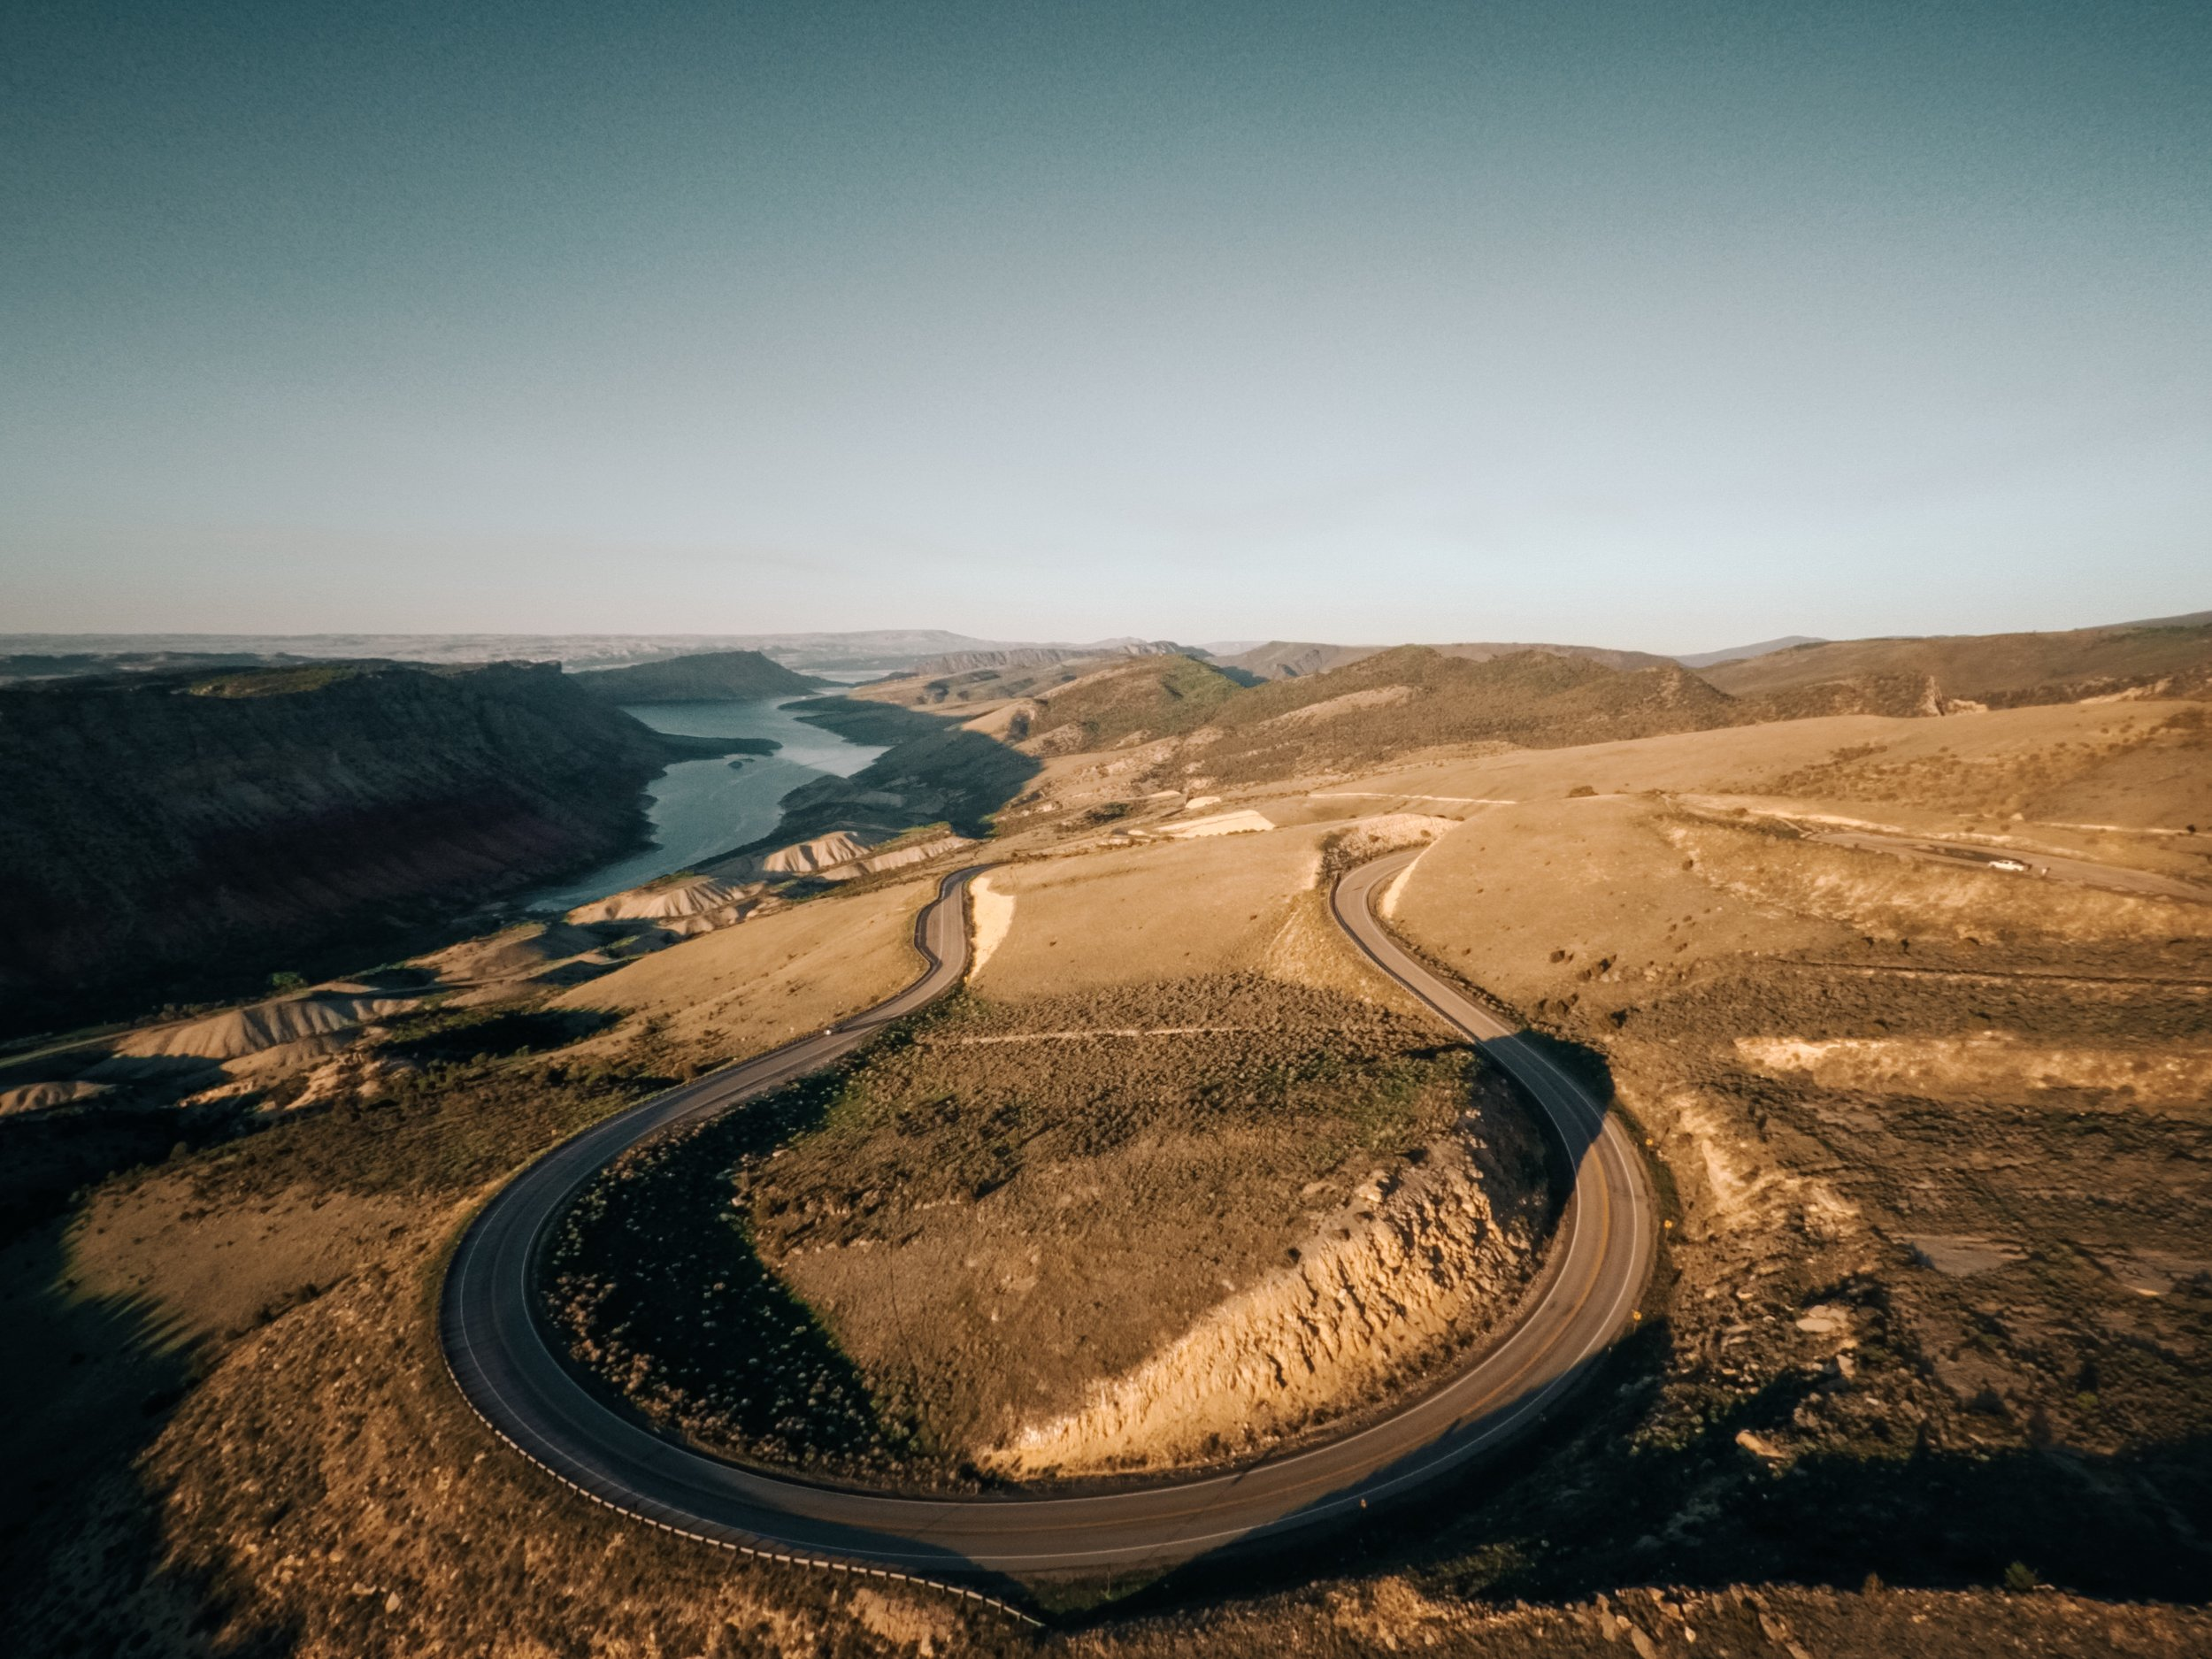 There is no fast or straight roads through Flaming Gorge and the Uinta Fault Line, only slow winding roads with amazing vistas! |    Edward Arthur Dalton